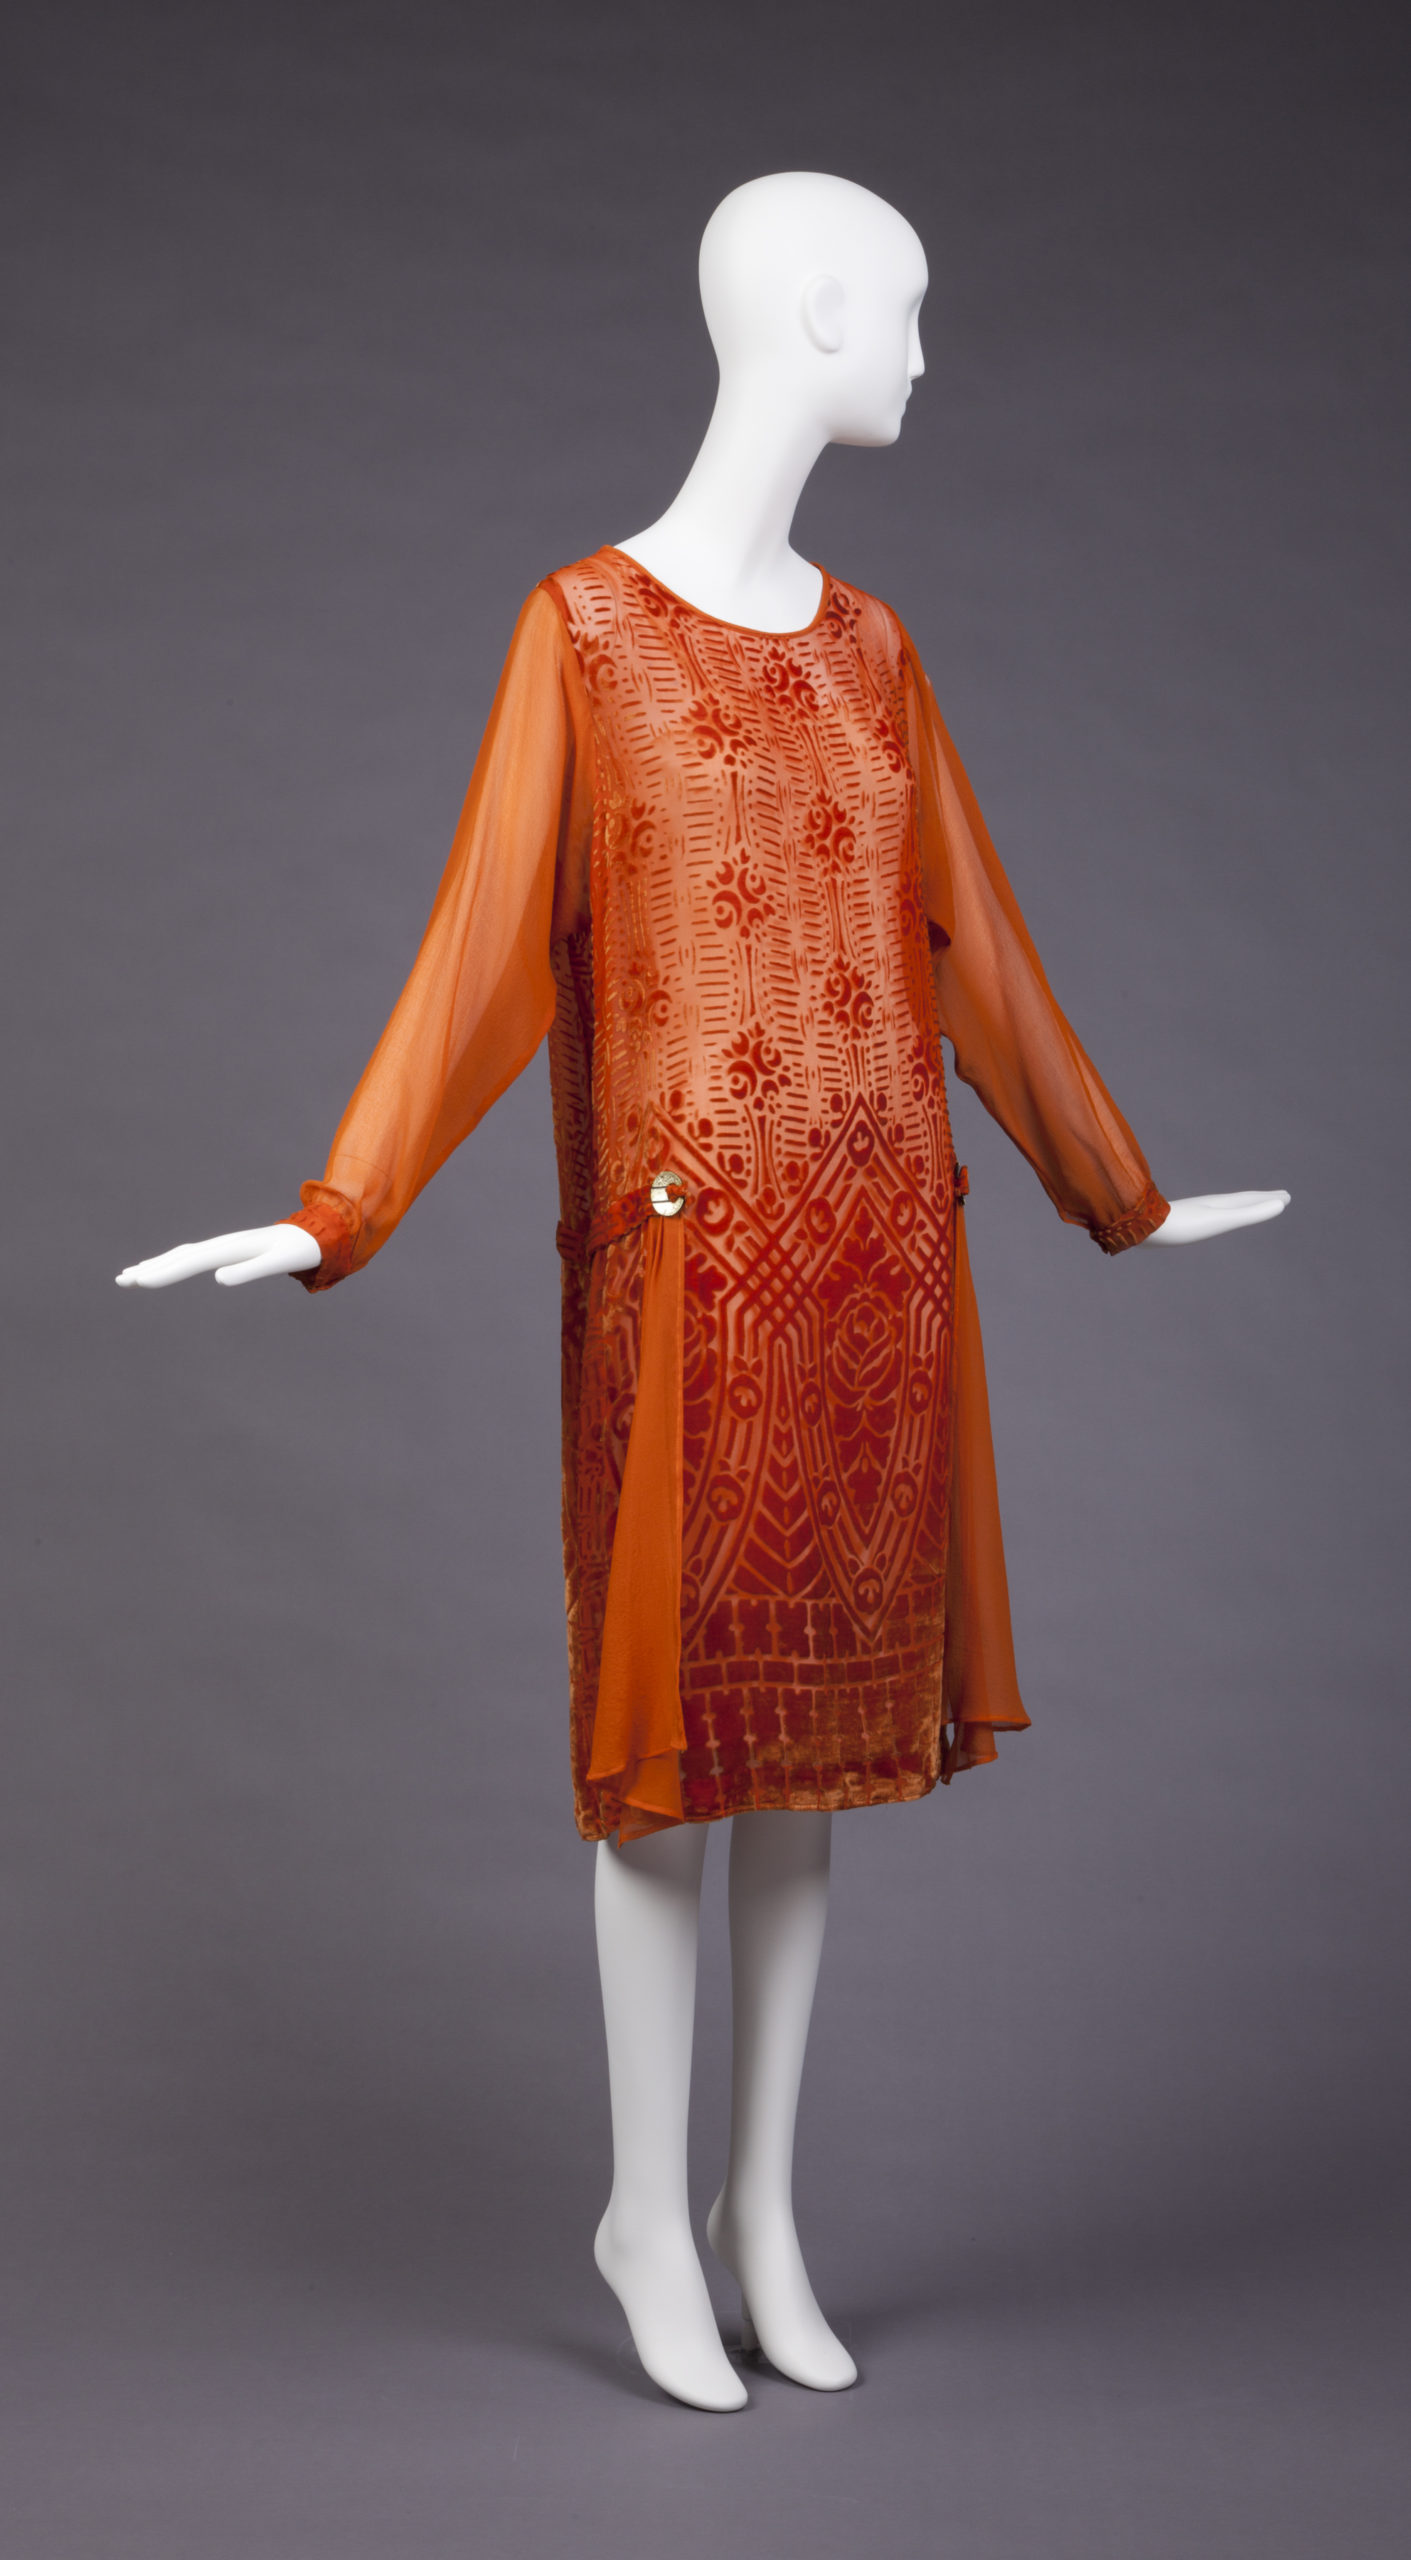 Dress, 1927-1928, plastic, silk, Gift of Mrs. Herbert O. Johnson, Goldstein Museum of Design 1981.033.032